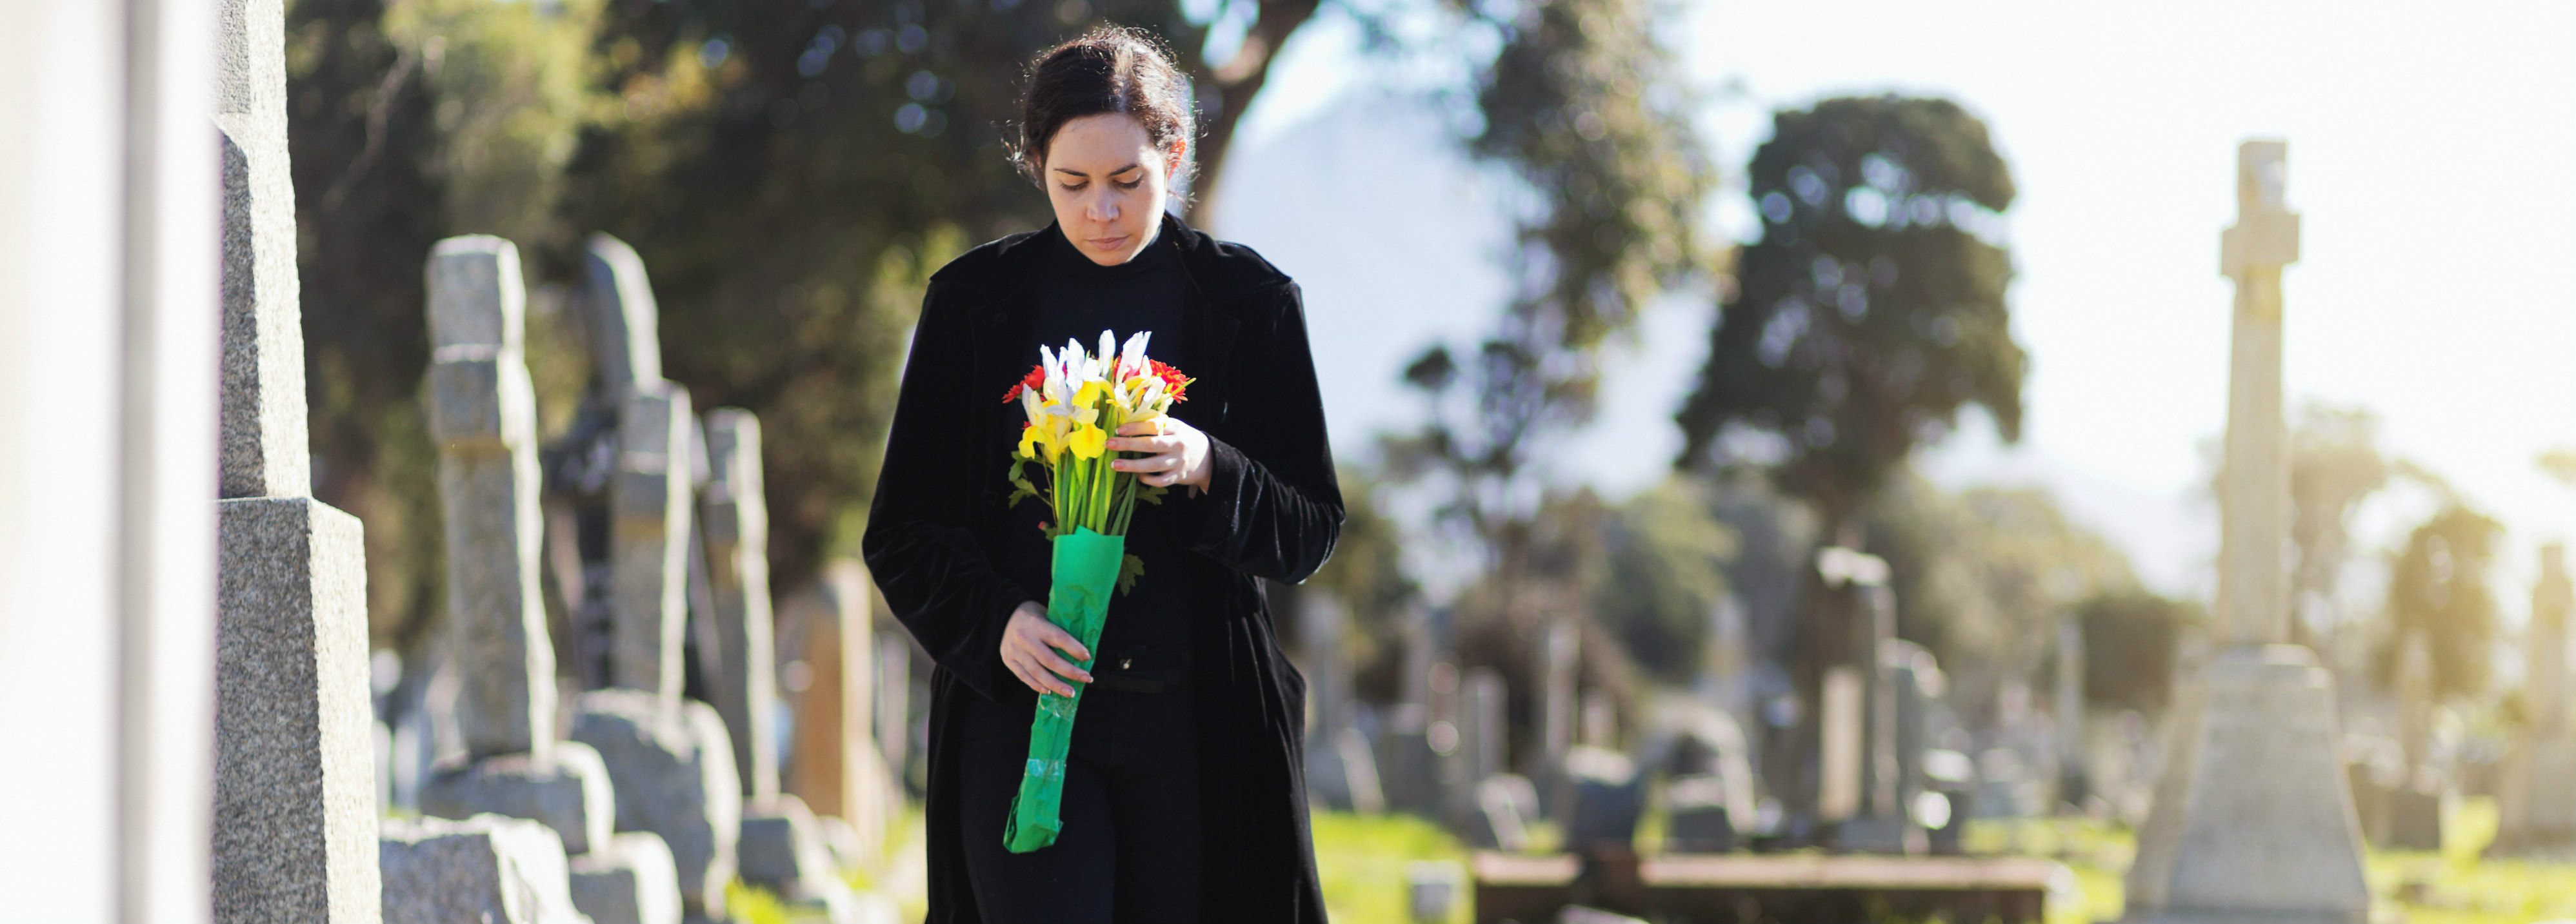 Woman wlaking through graveyard holding flowers